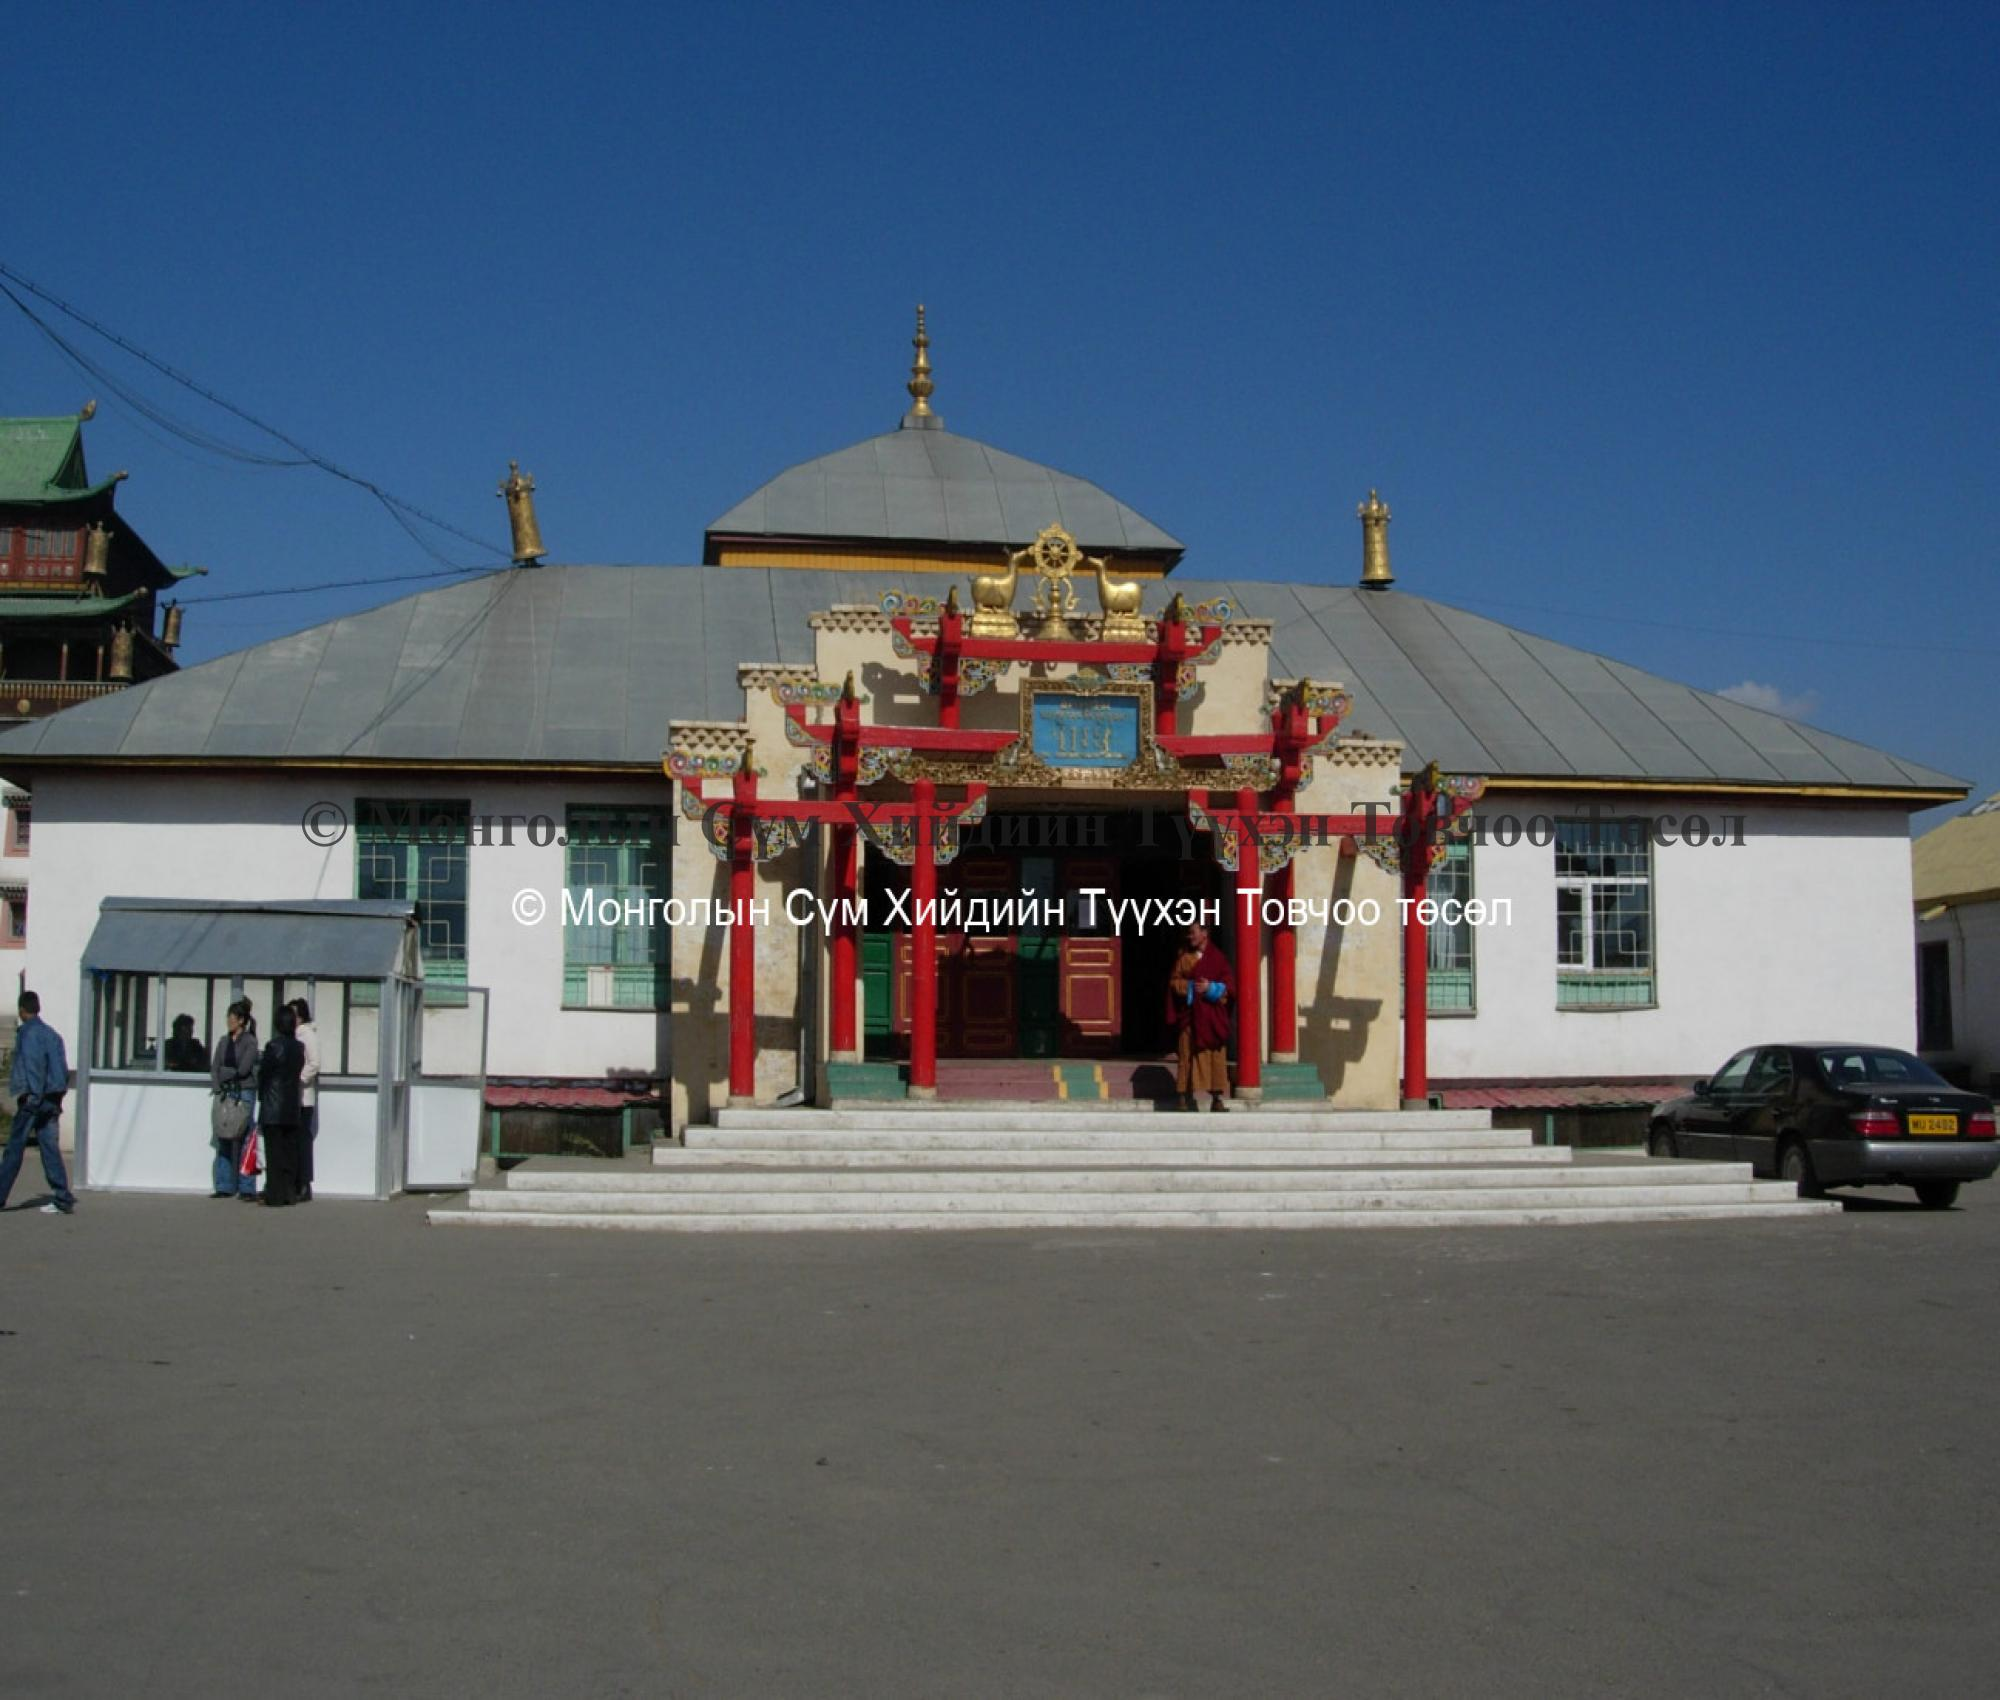 Front view of Güngaachoilin datsan